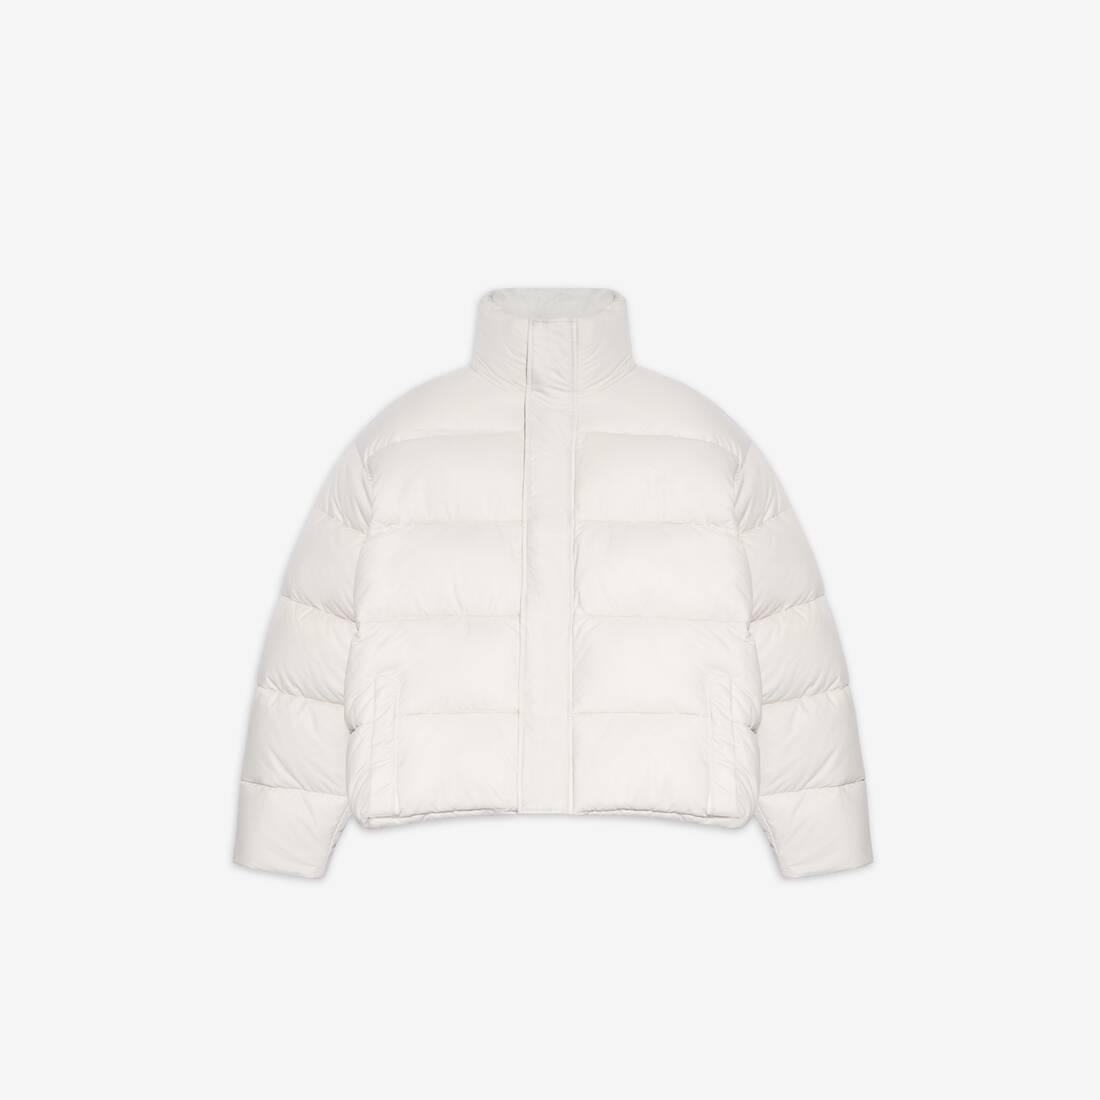 Display zoomed version of bb puffer jacket 1